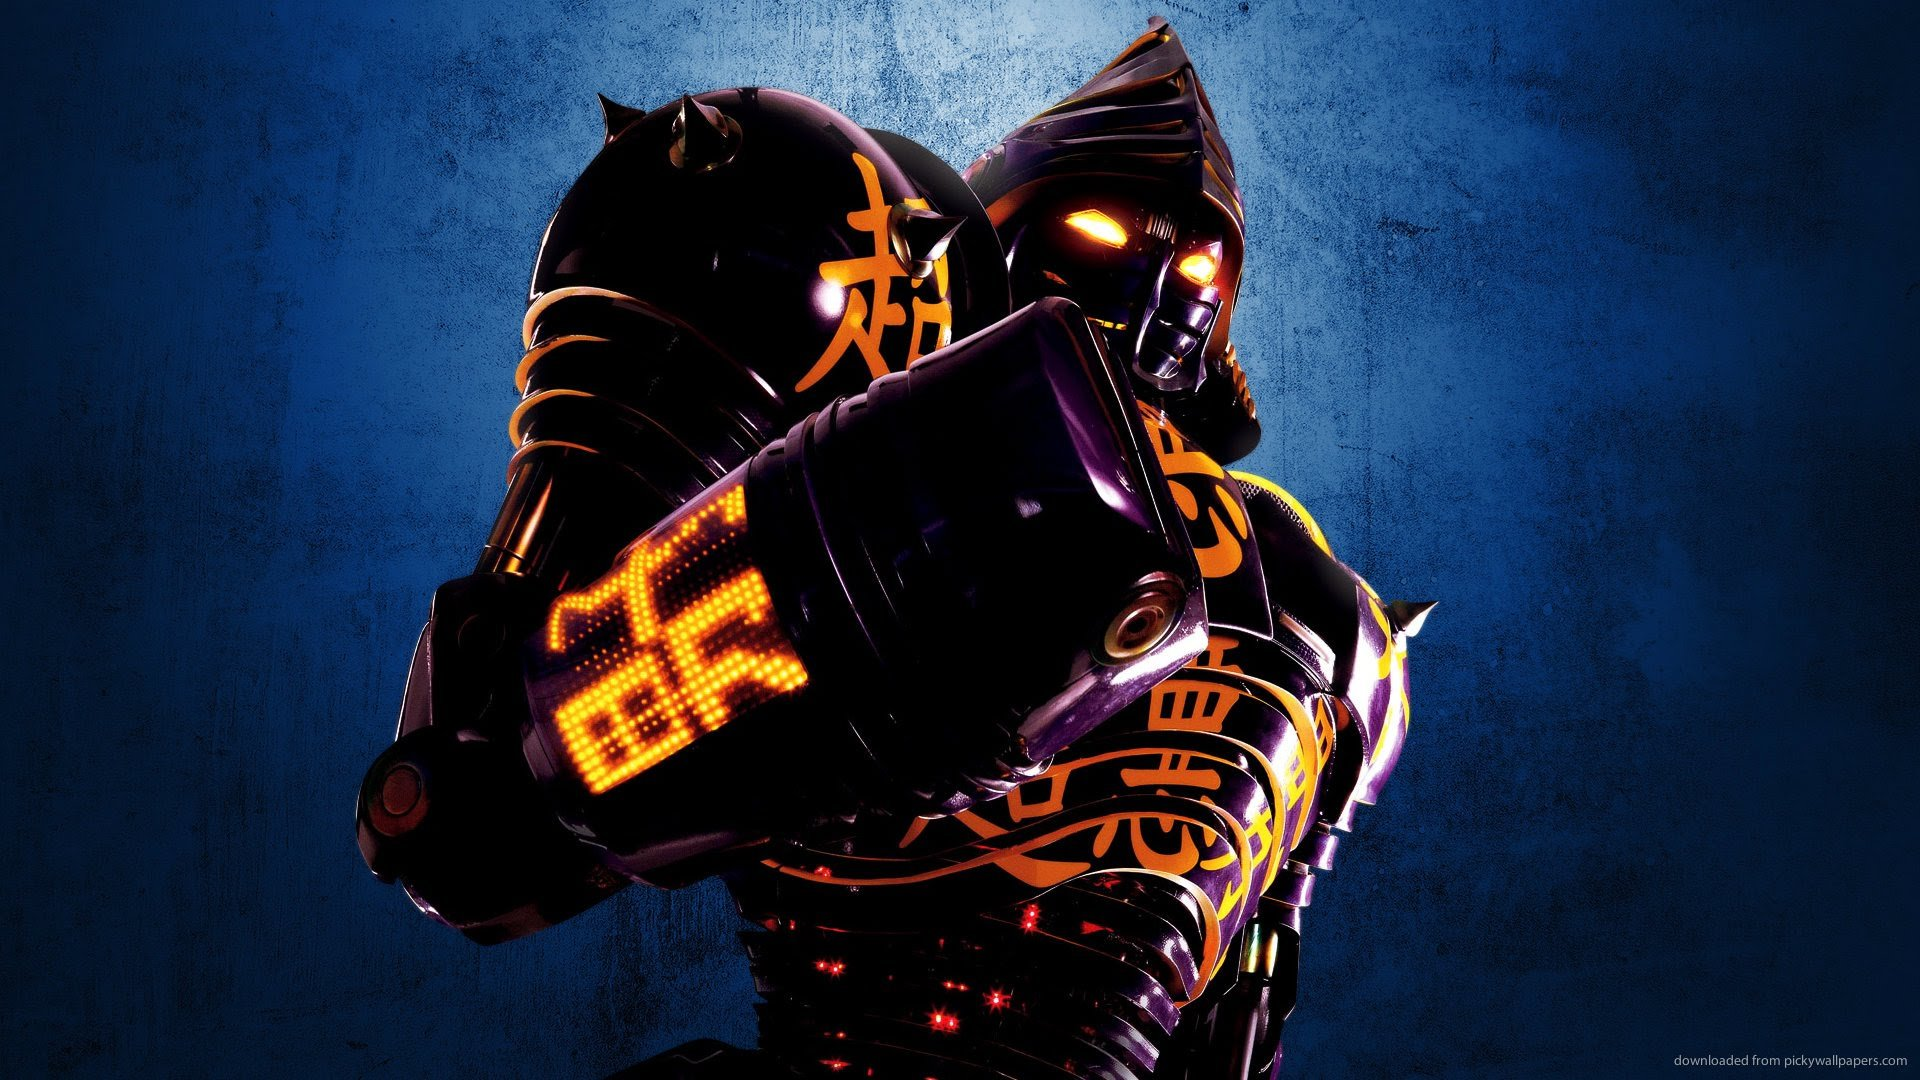 Free Download Real Steel Wallpaper Id305686 Hd 1920x1080 For Pc